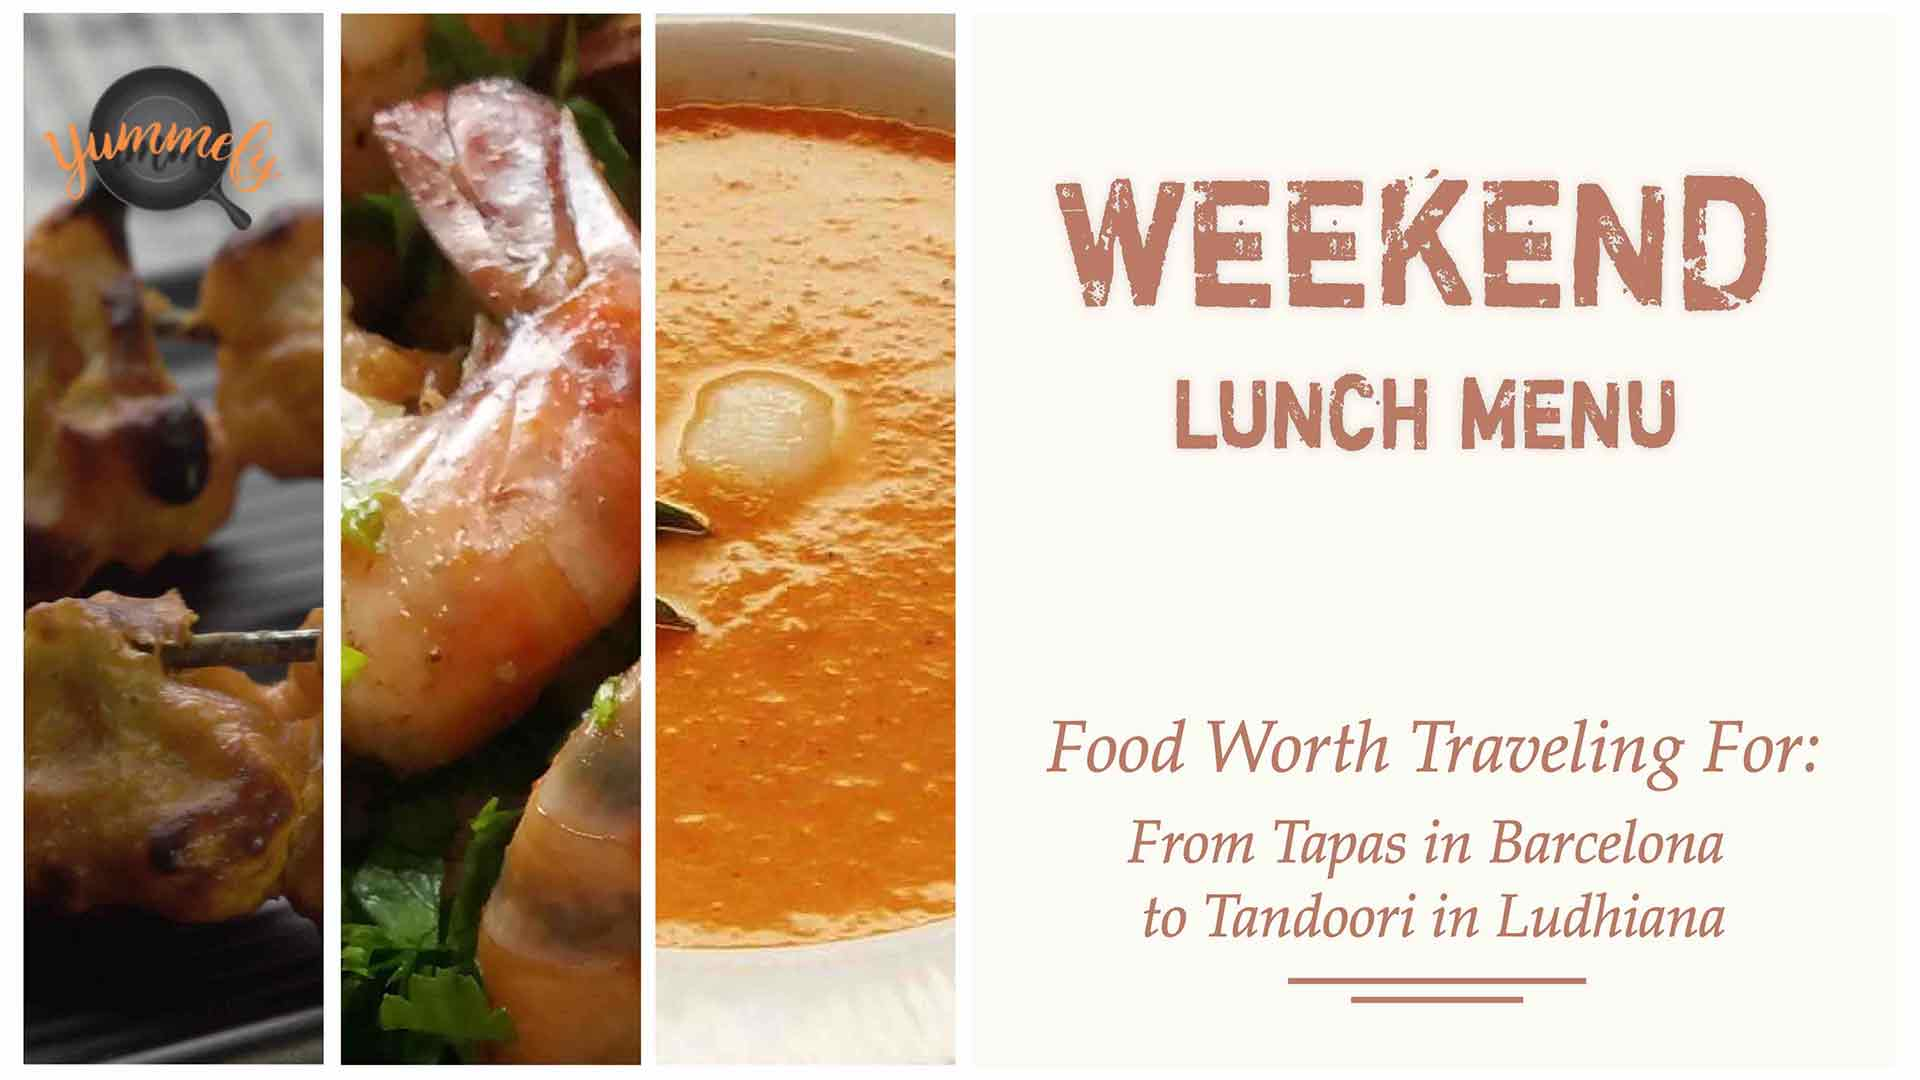 Weekend Lunch Menu | From Tapas in Barcelona to Tandoori in Ludhiana